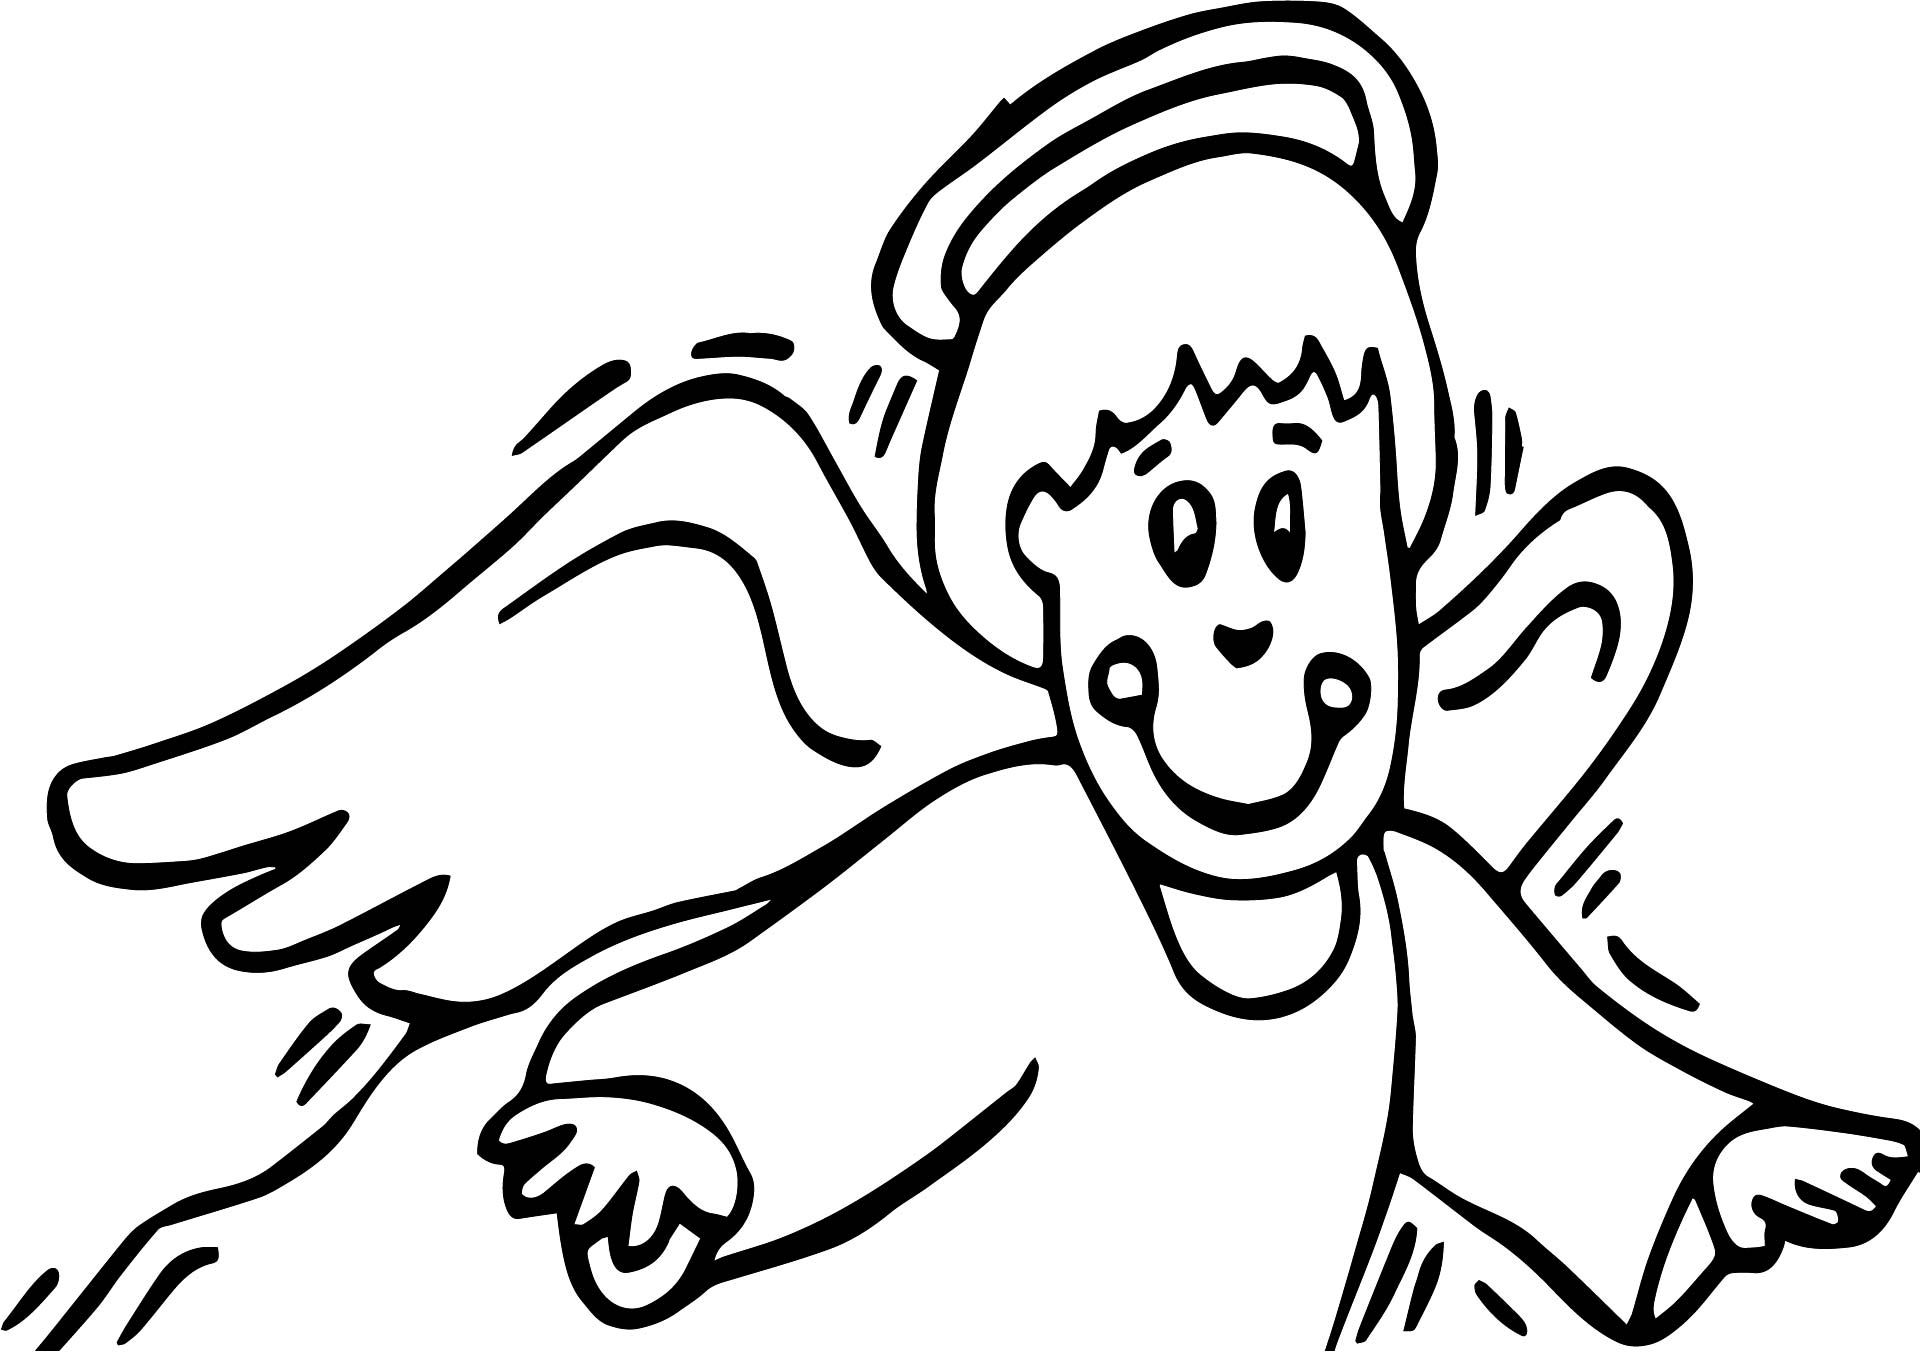 nice Angel All Saint Day Coloring Page | Santa coloring ...